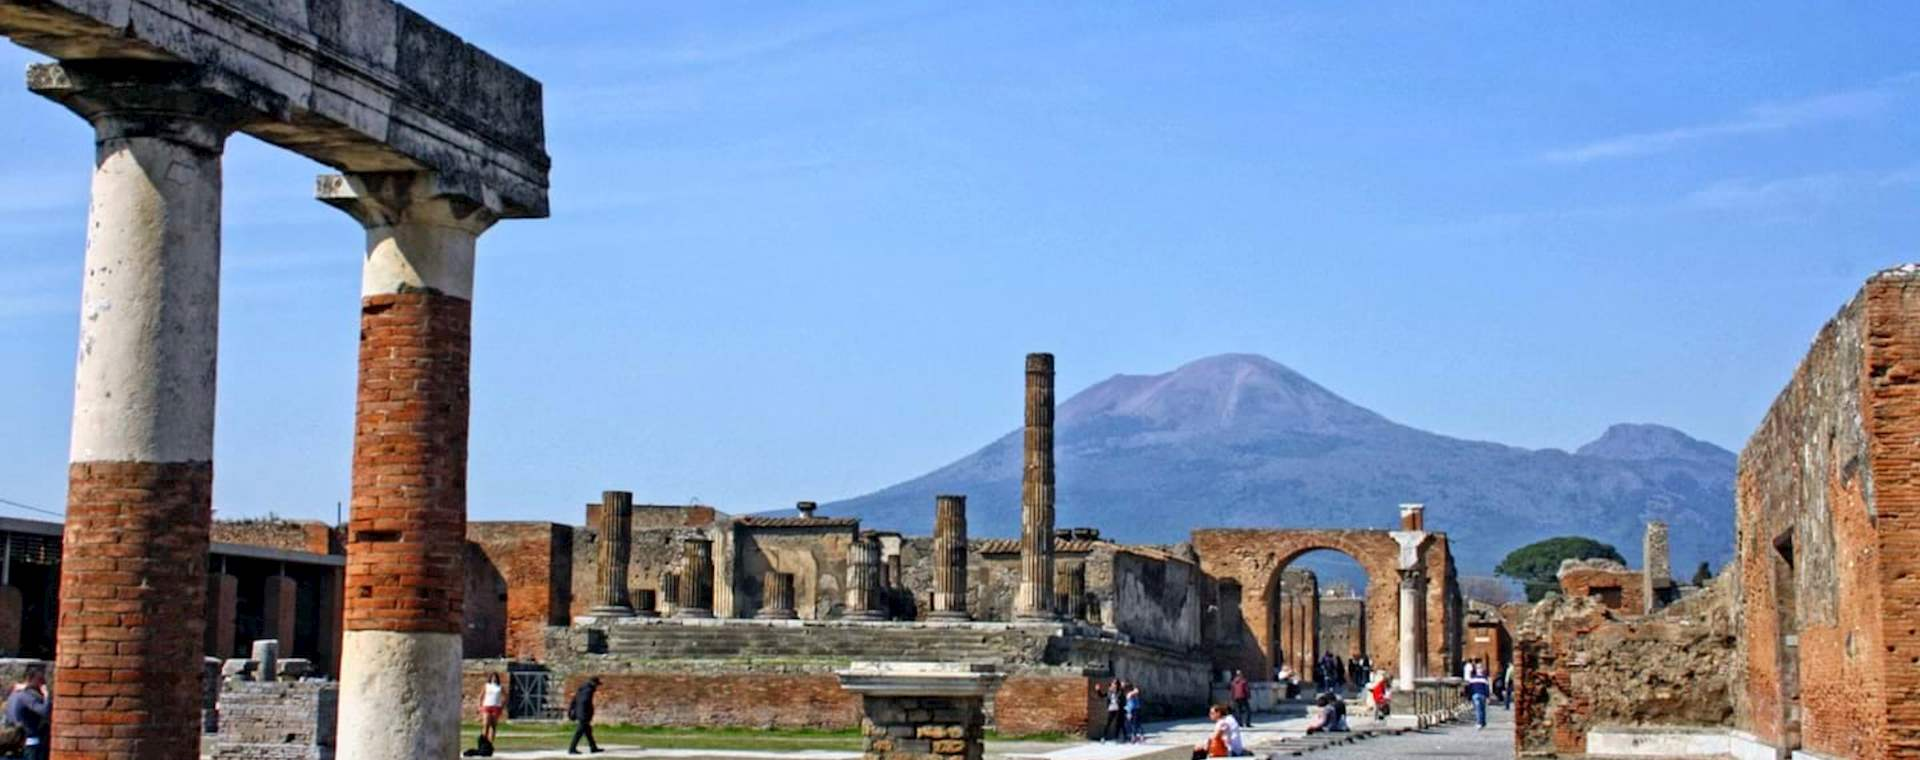 Skip-the-Line Tickets: Ruins of Pompeii